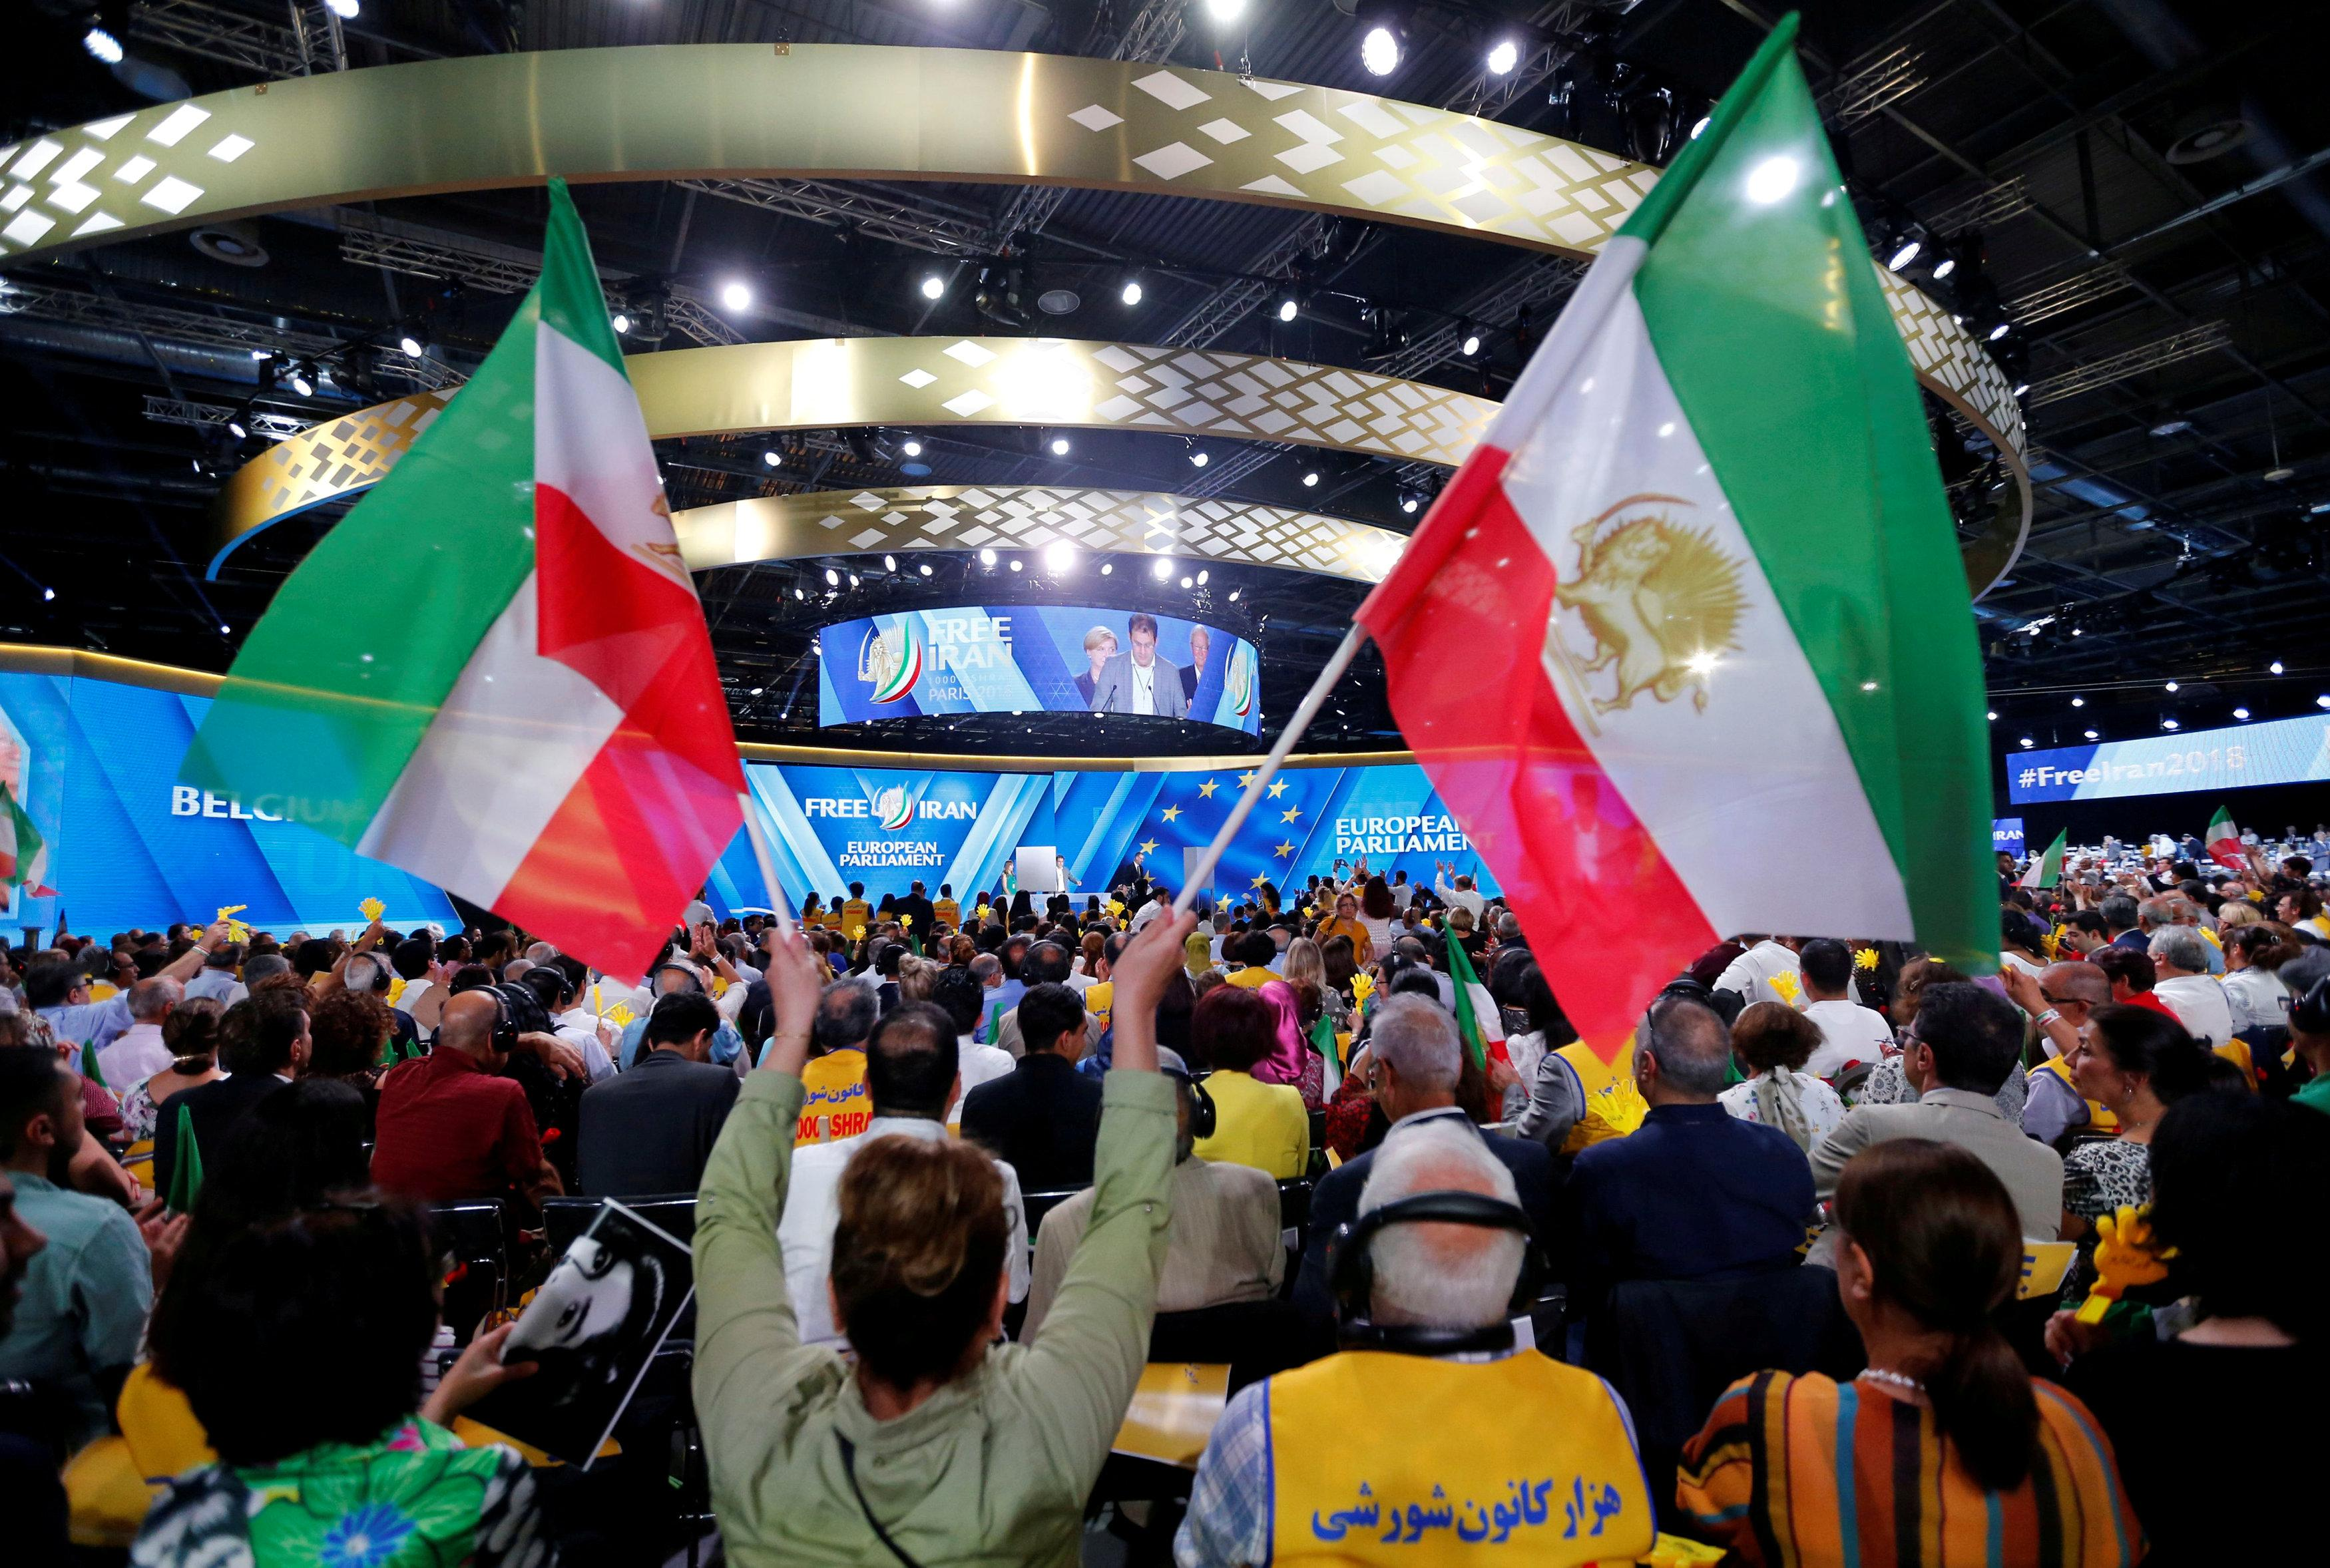 Supporters of Maryam Rajavi, president-elect of the National Council of Resistance of Iran (NCRI), attend a rally in Villepinte, near Paris, France, June 30, 2018.   Regis Duvignau